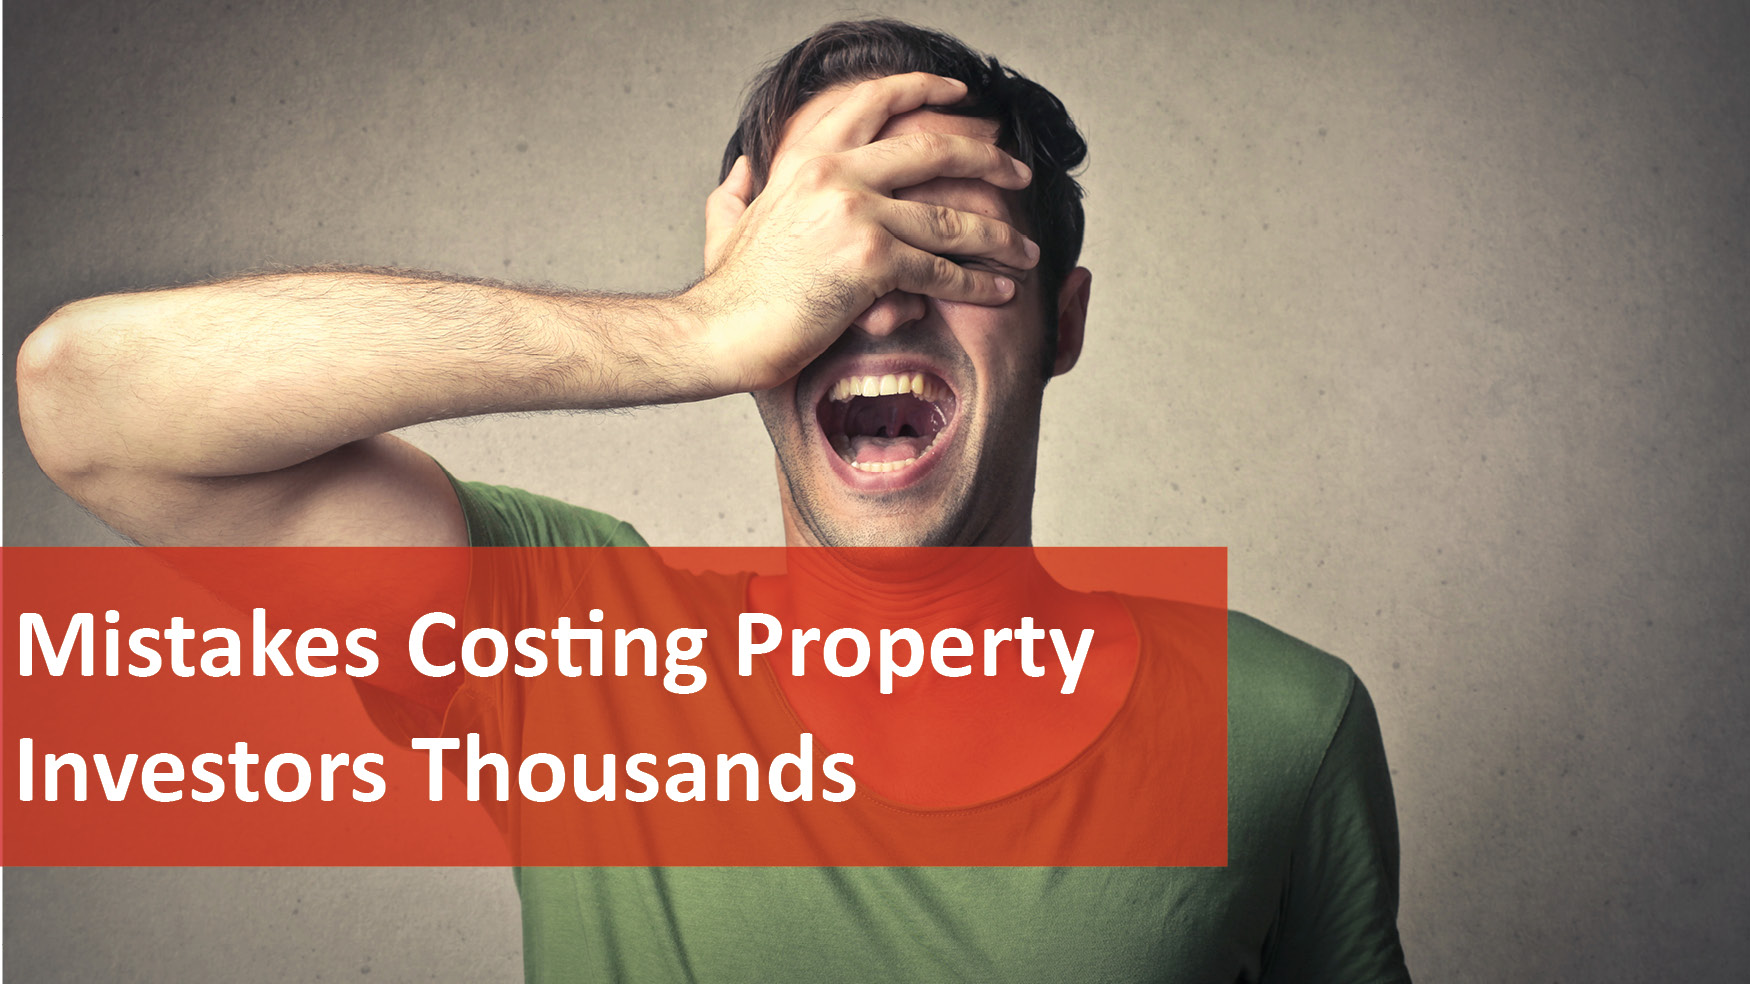 We Love Rentals Mistakes Costing Property Investors Thousands